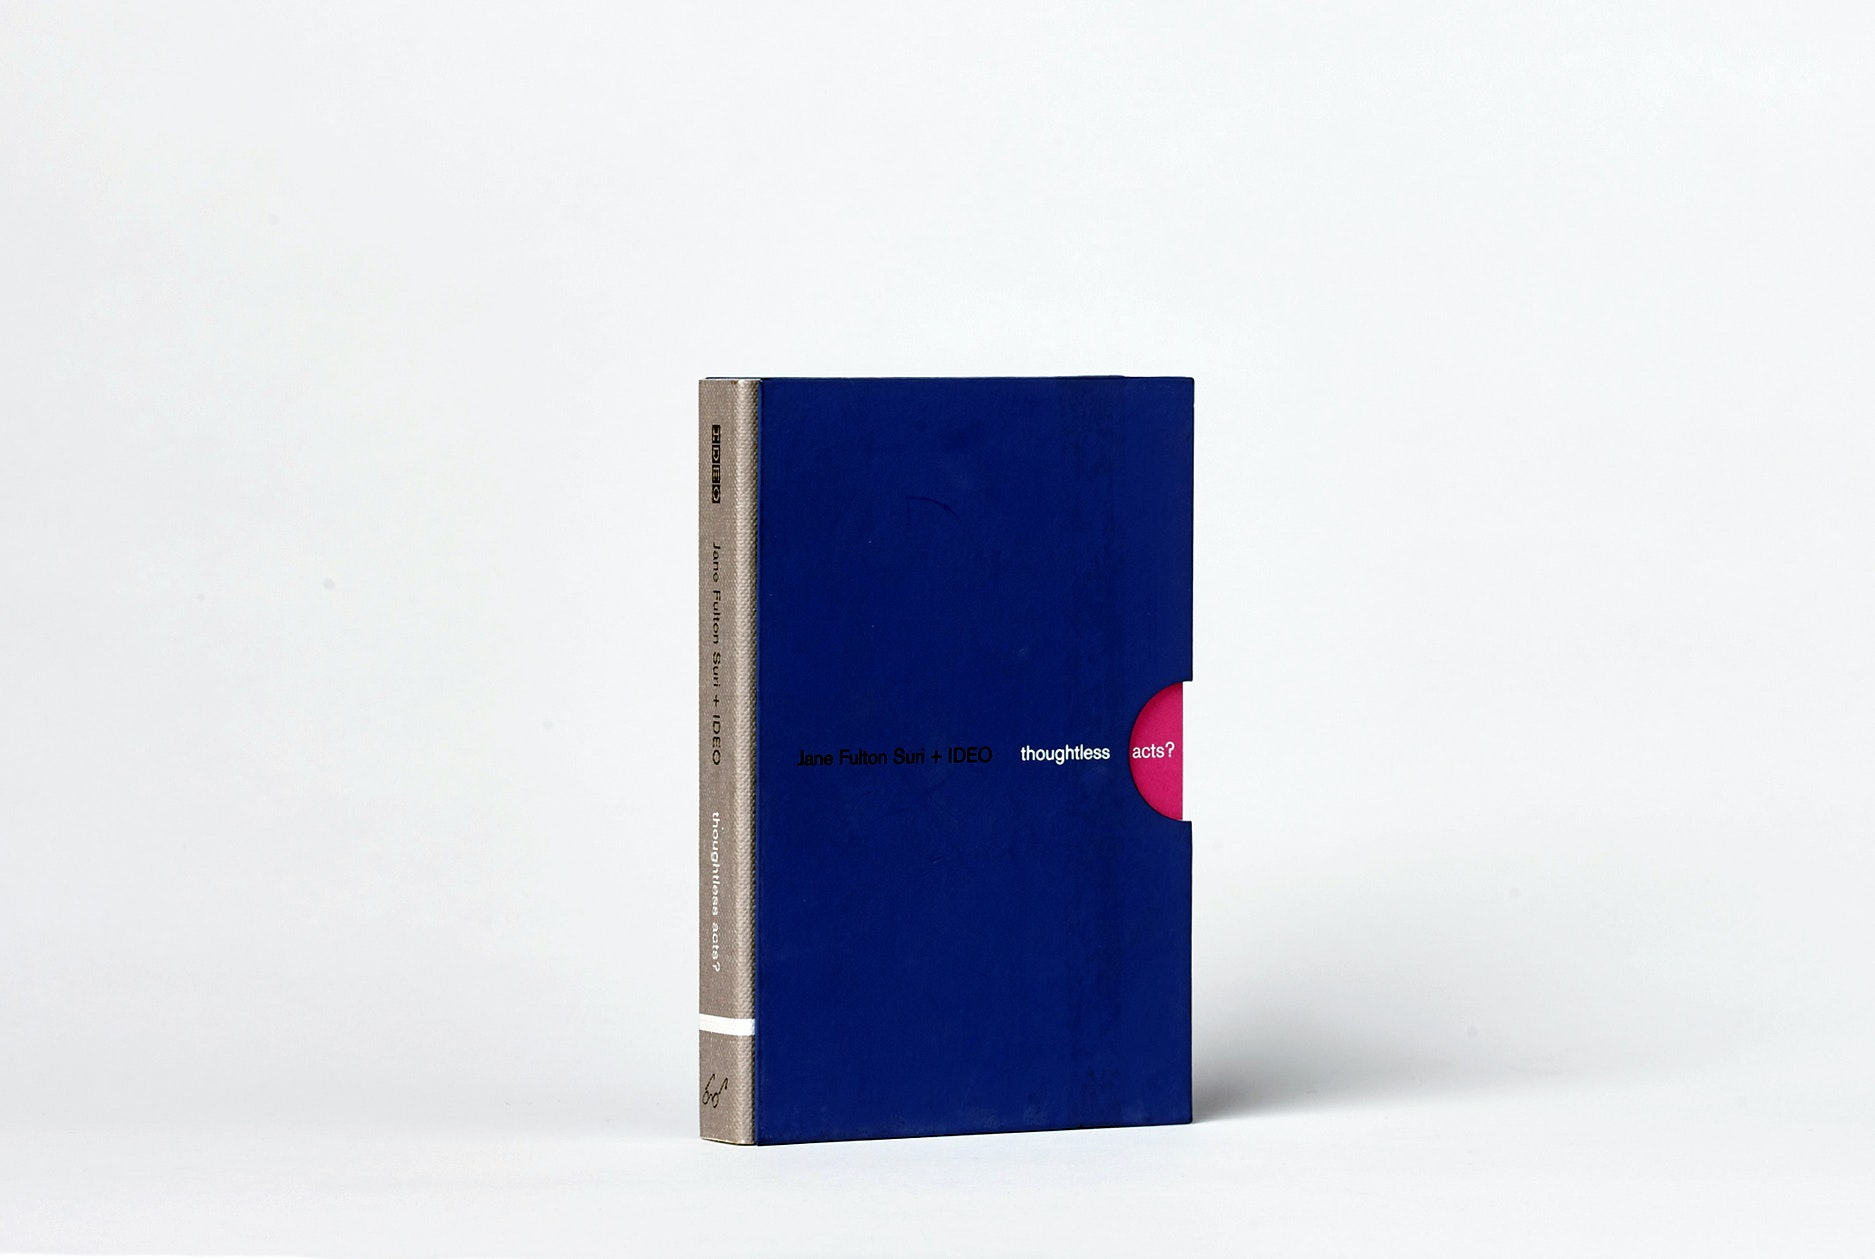 Ideo  Books  Thoughtless  Acts 160211 110703